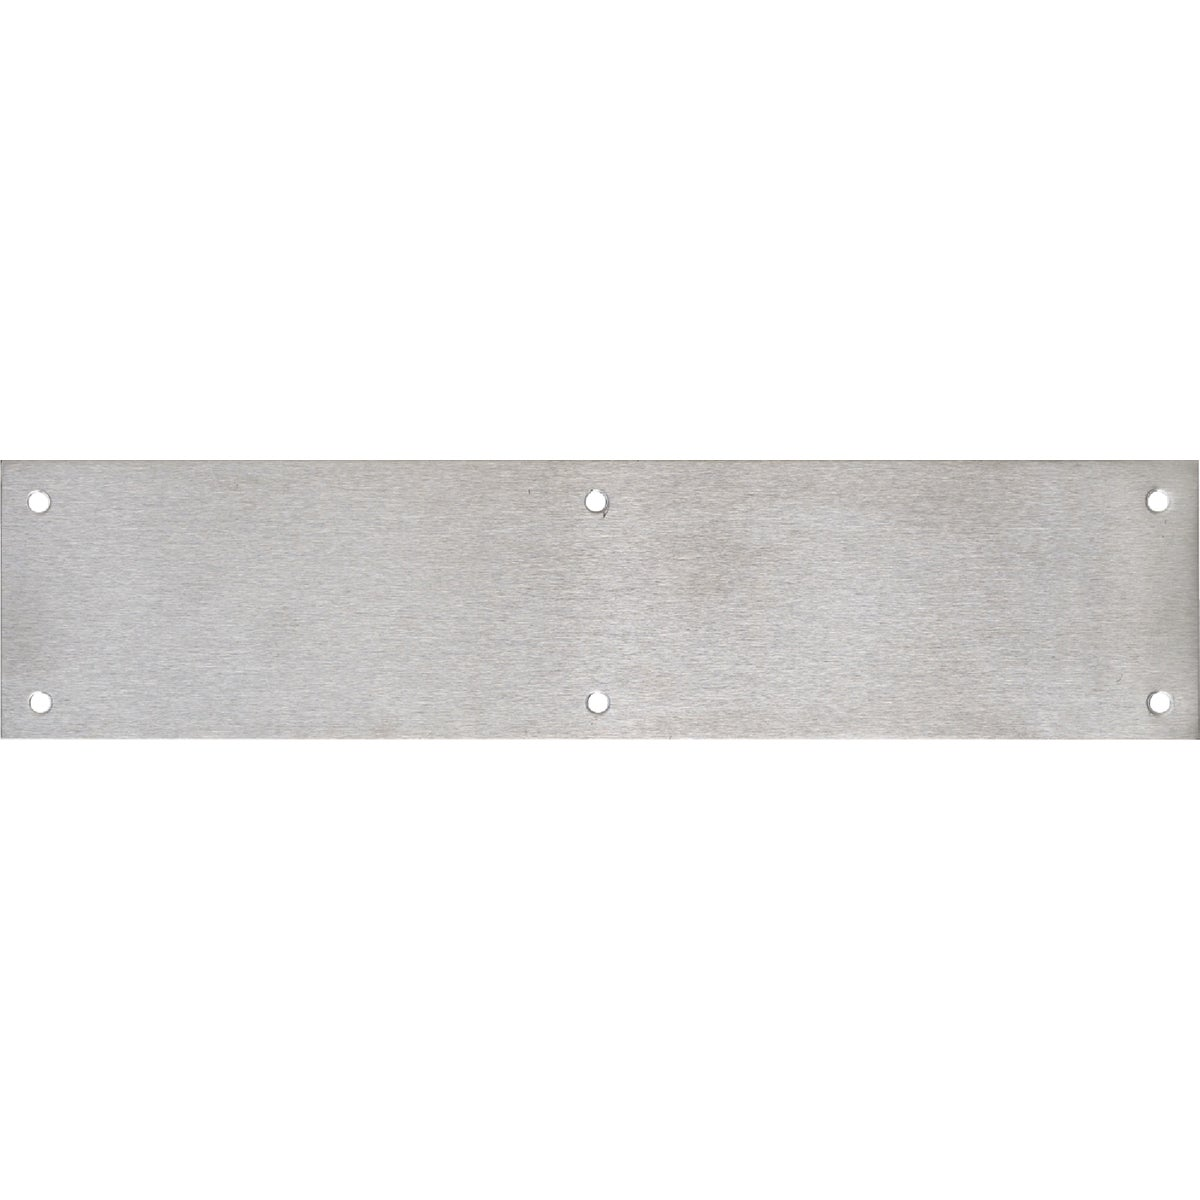 3.5X15 28 PUSH PLATE - DT100073 by Tell Mfg Inc